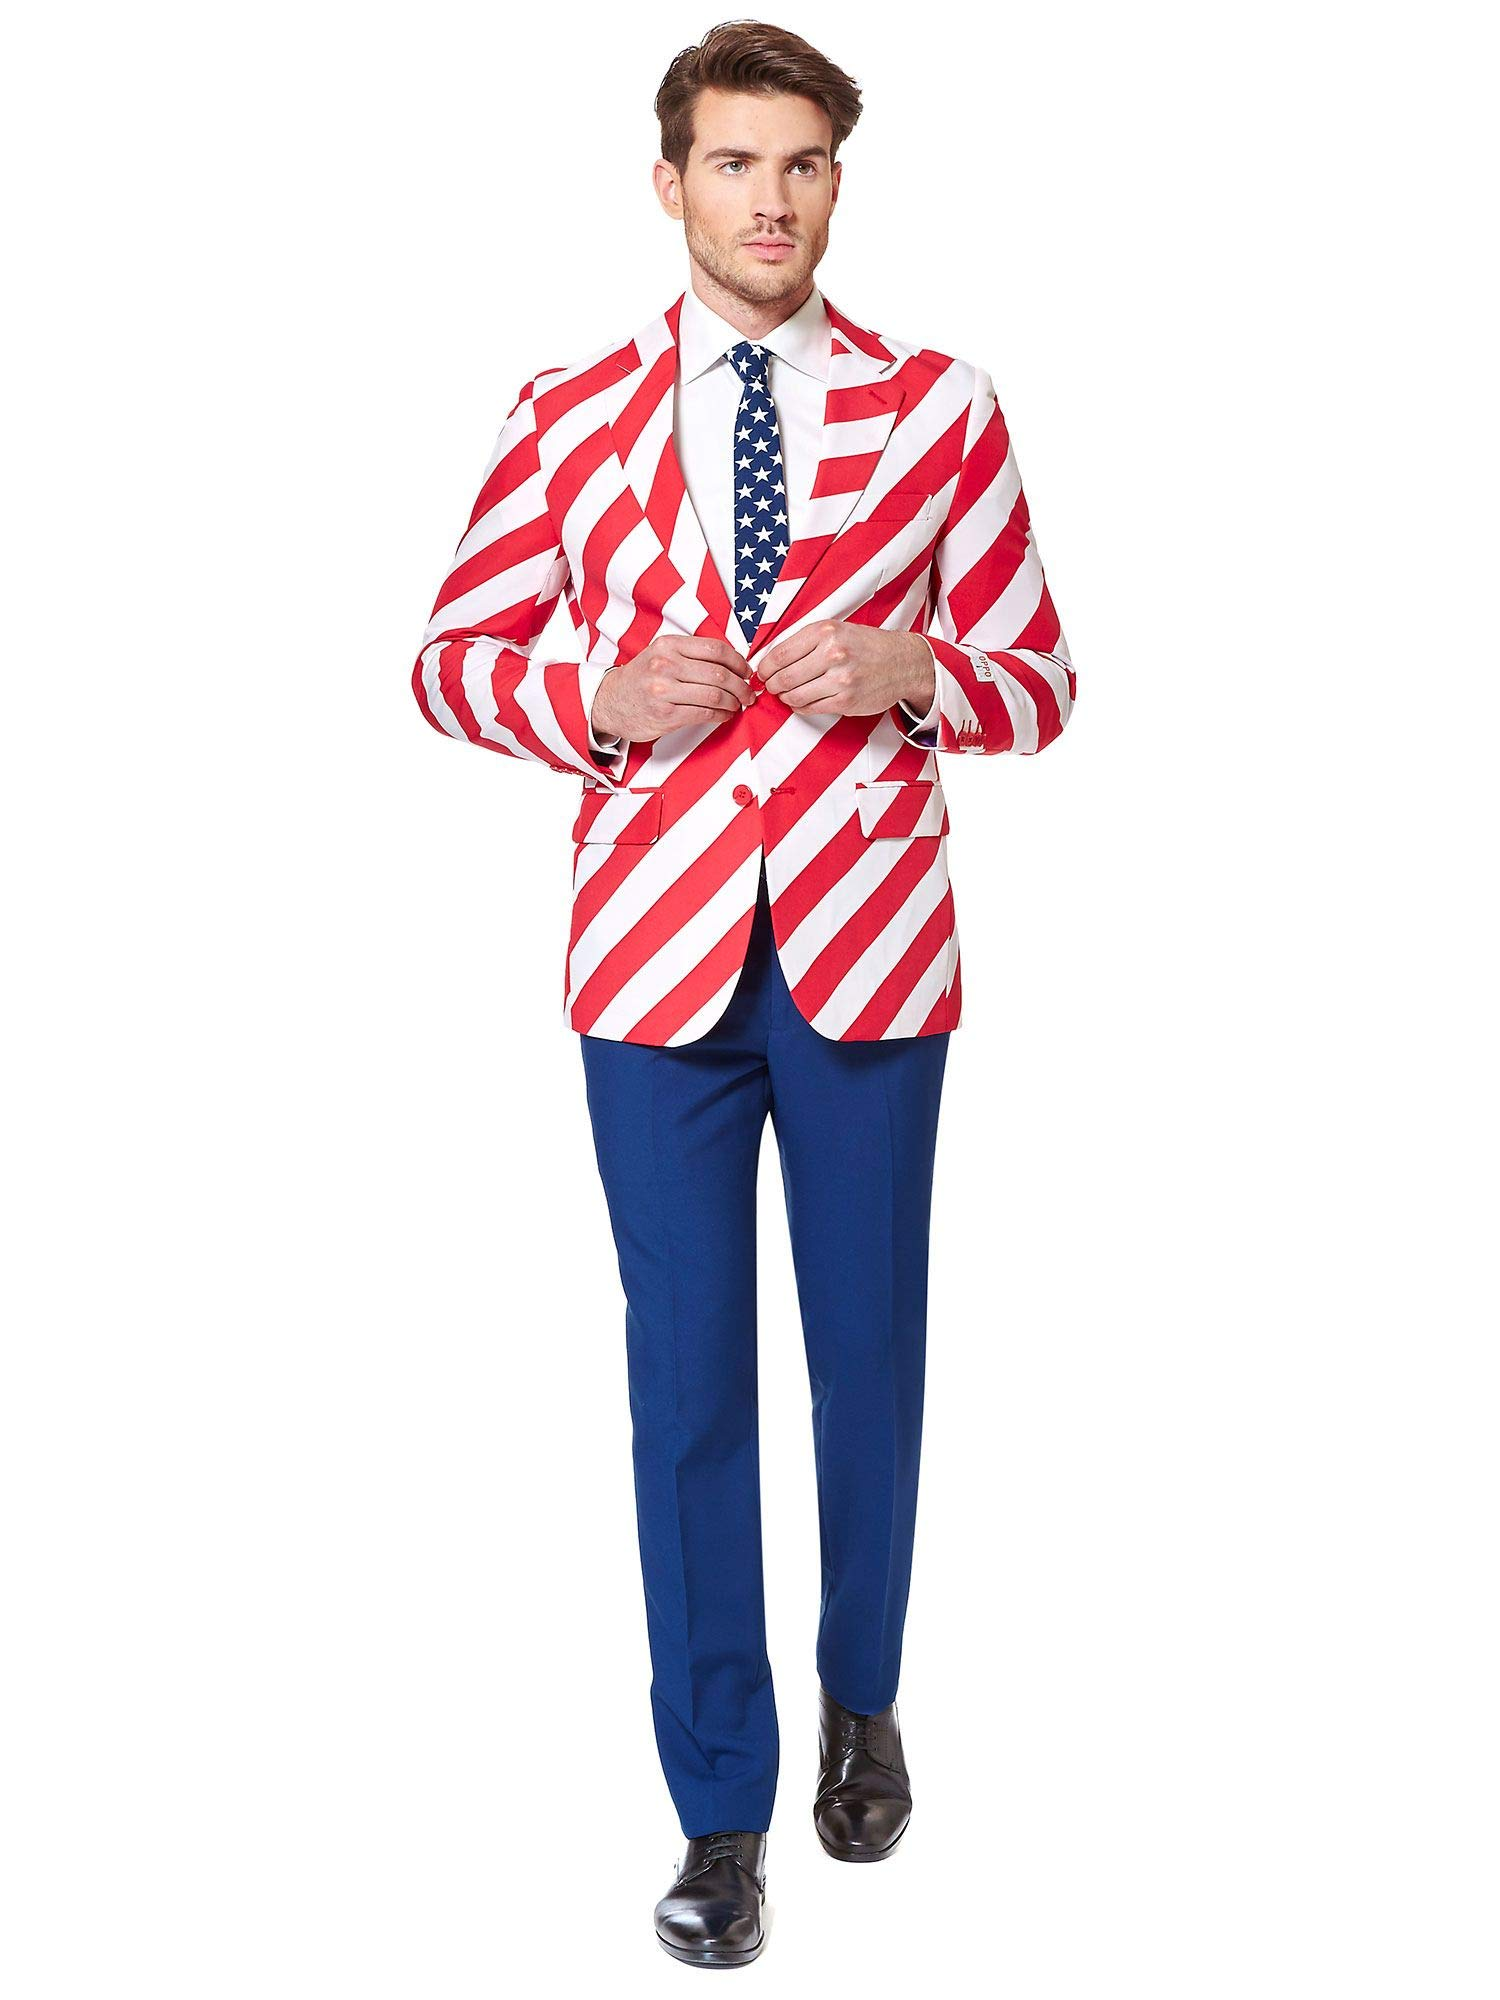 Opposuits American Flag Suit for Men USA Outfit for The 4th of July with Pants, Jacket and Tie,United Stripes,42 by OppoSuits